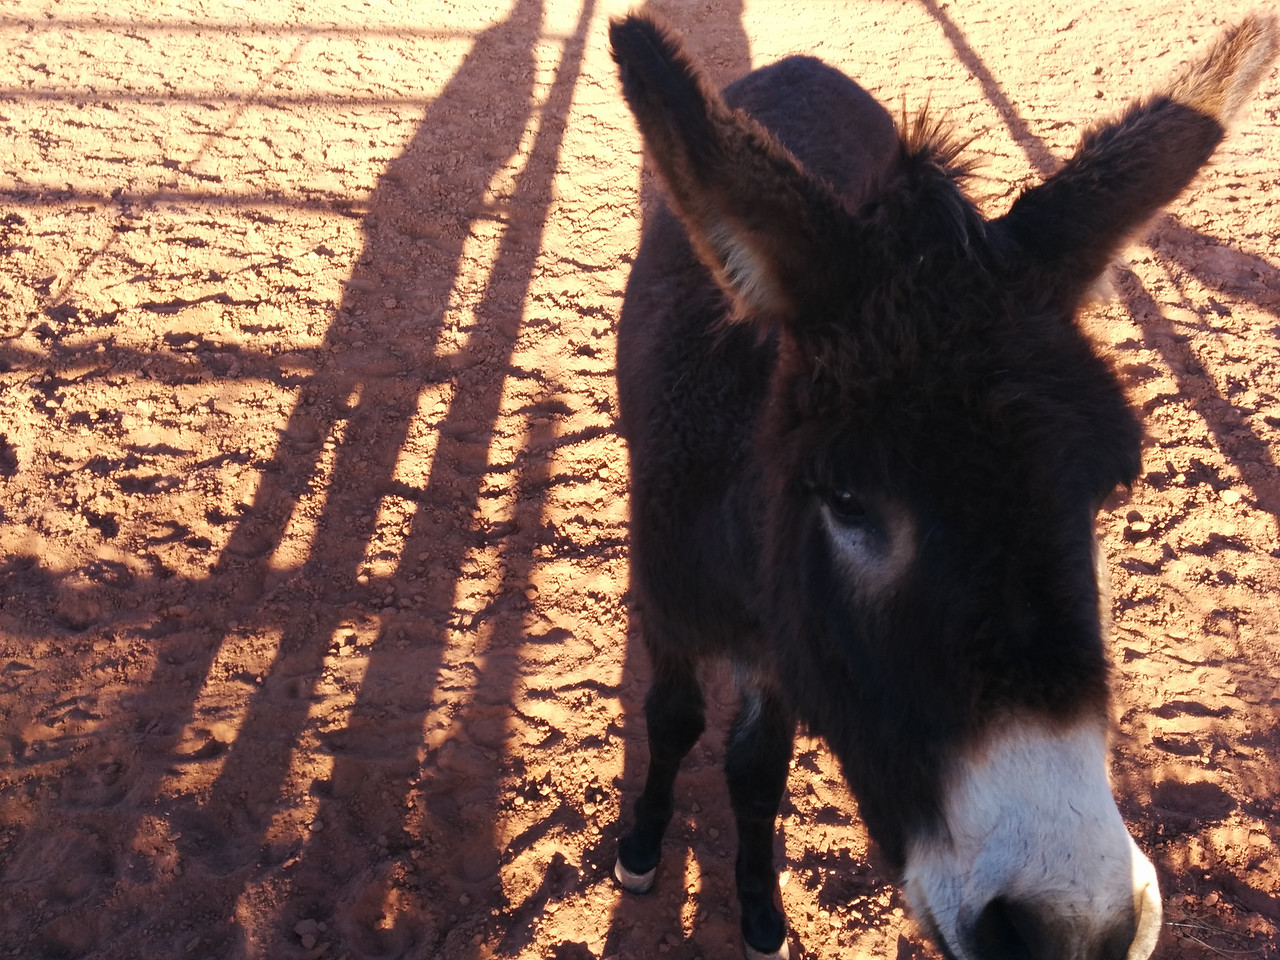 A morning greeting from one of the two donkeys.  This one's name is Chocolate.